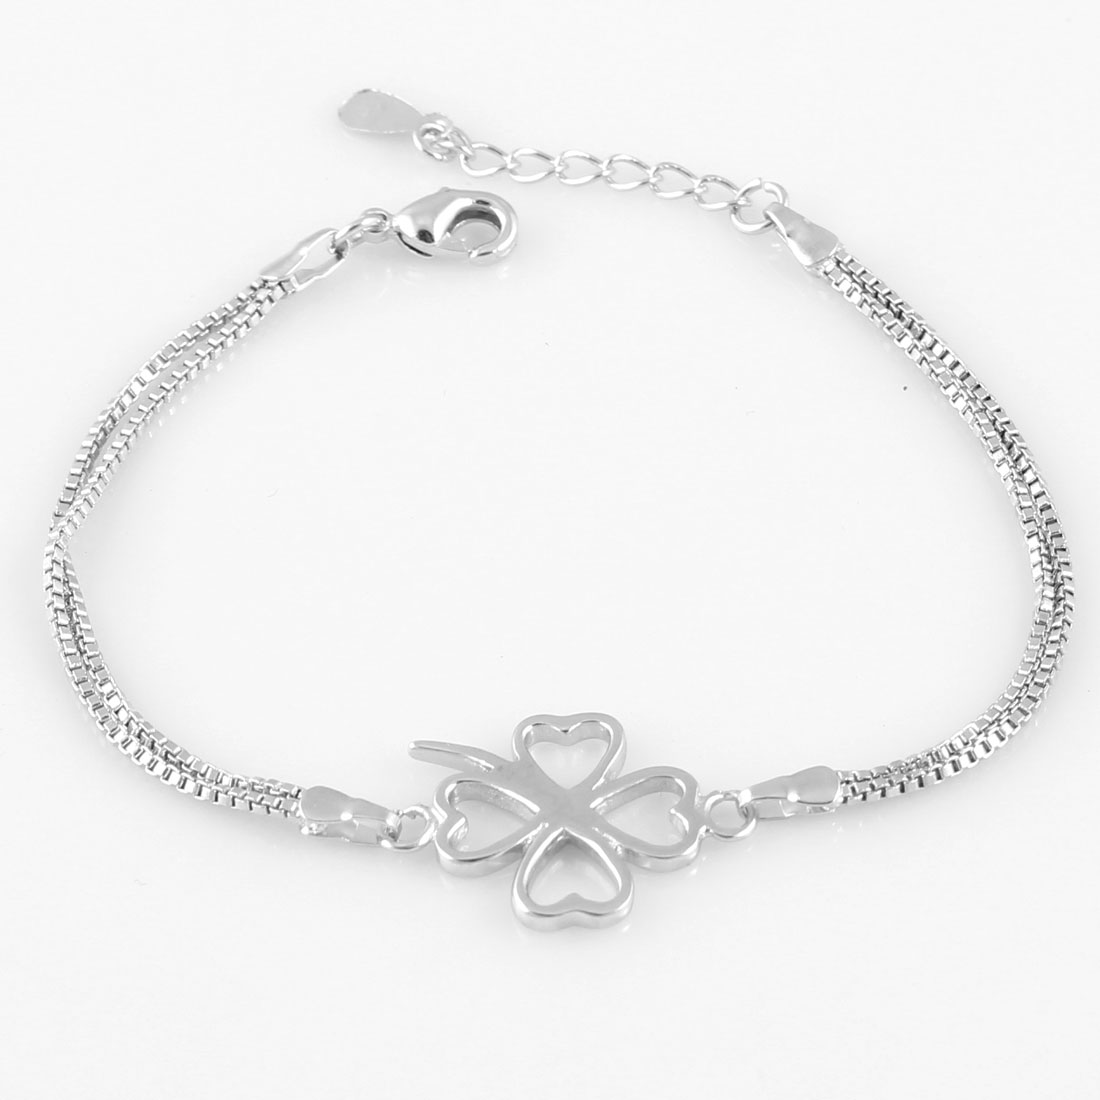 Women Clover Decor Adjustable Chain Bracelet Bangle Silver Tone